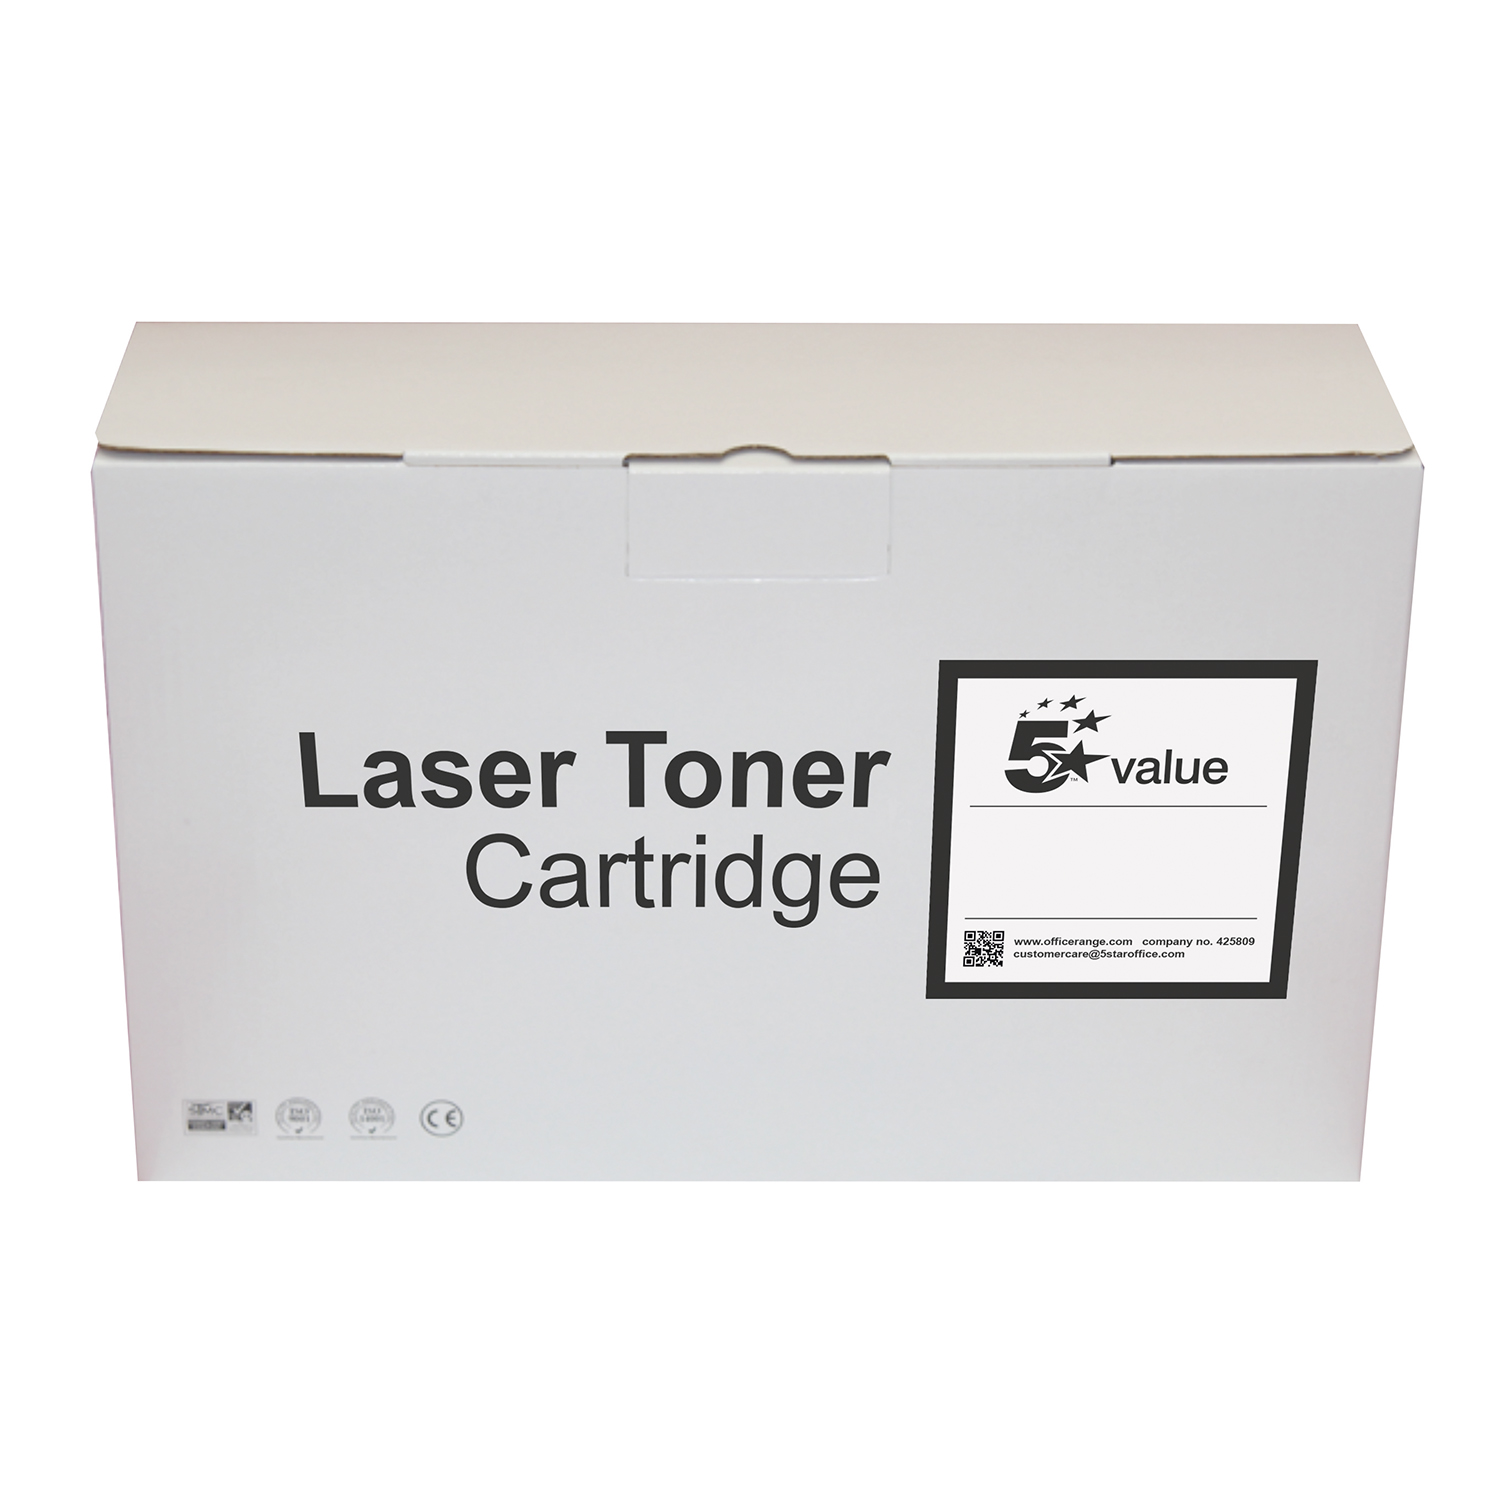 5 Star Value Remanufactured Laser Toner Cartridge Page Life 6000pp Cyan [HP No. 507A CE401A Alternative]